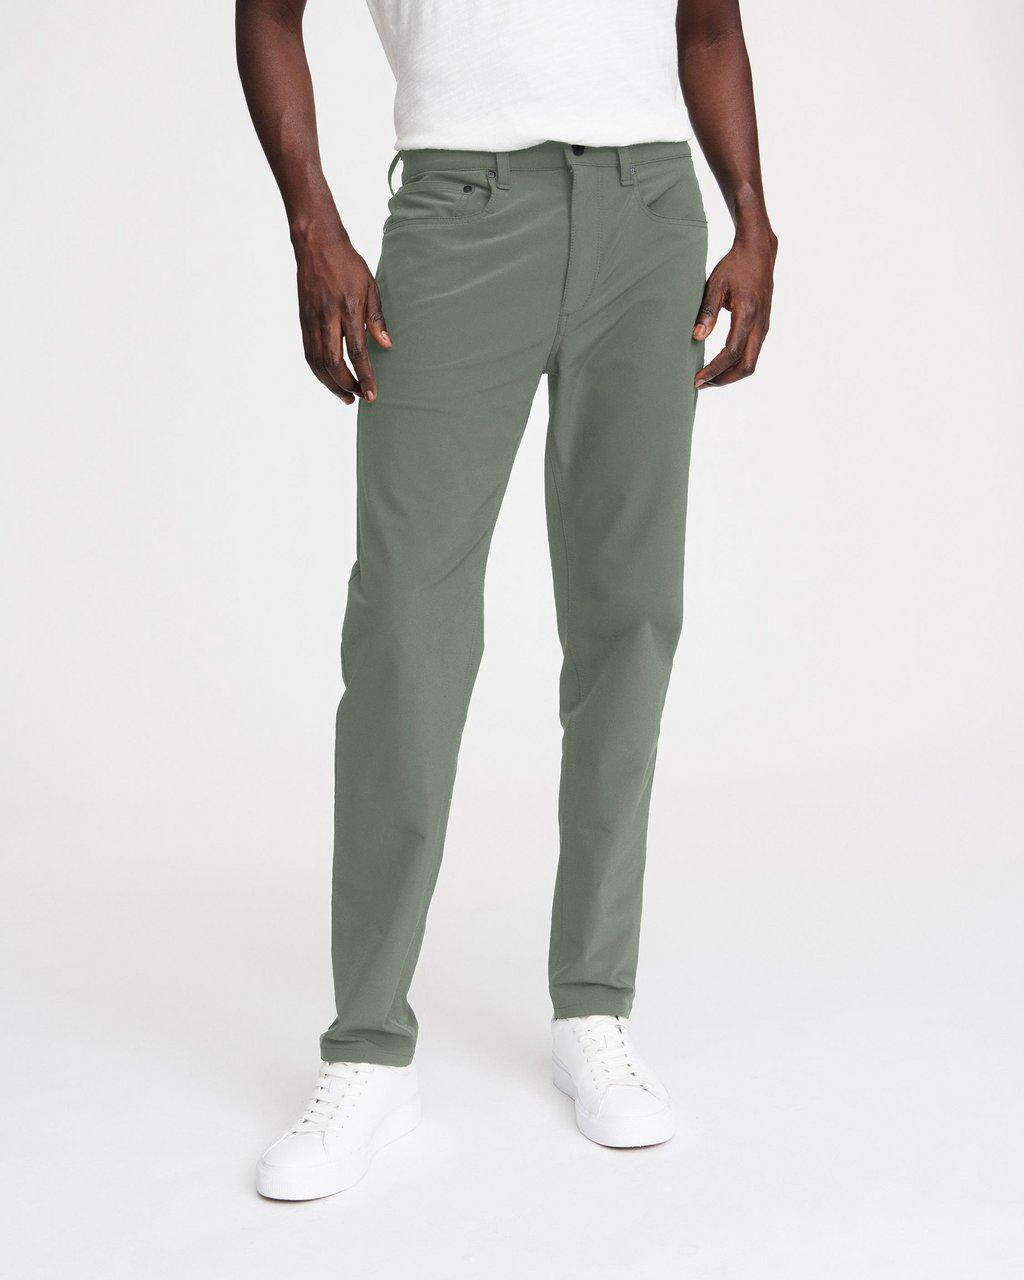 TECH 5 POCKET PANT